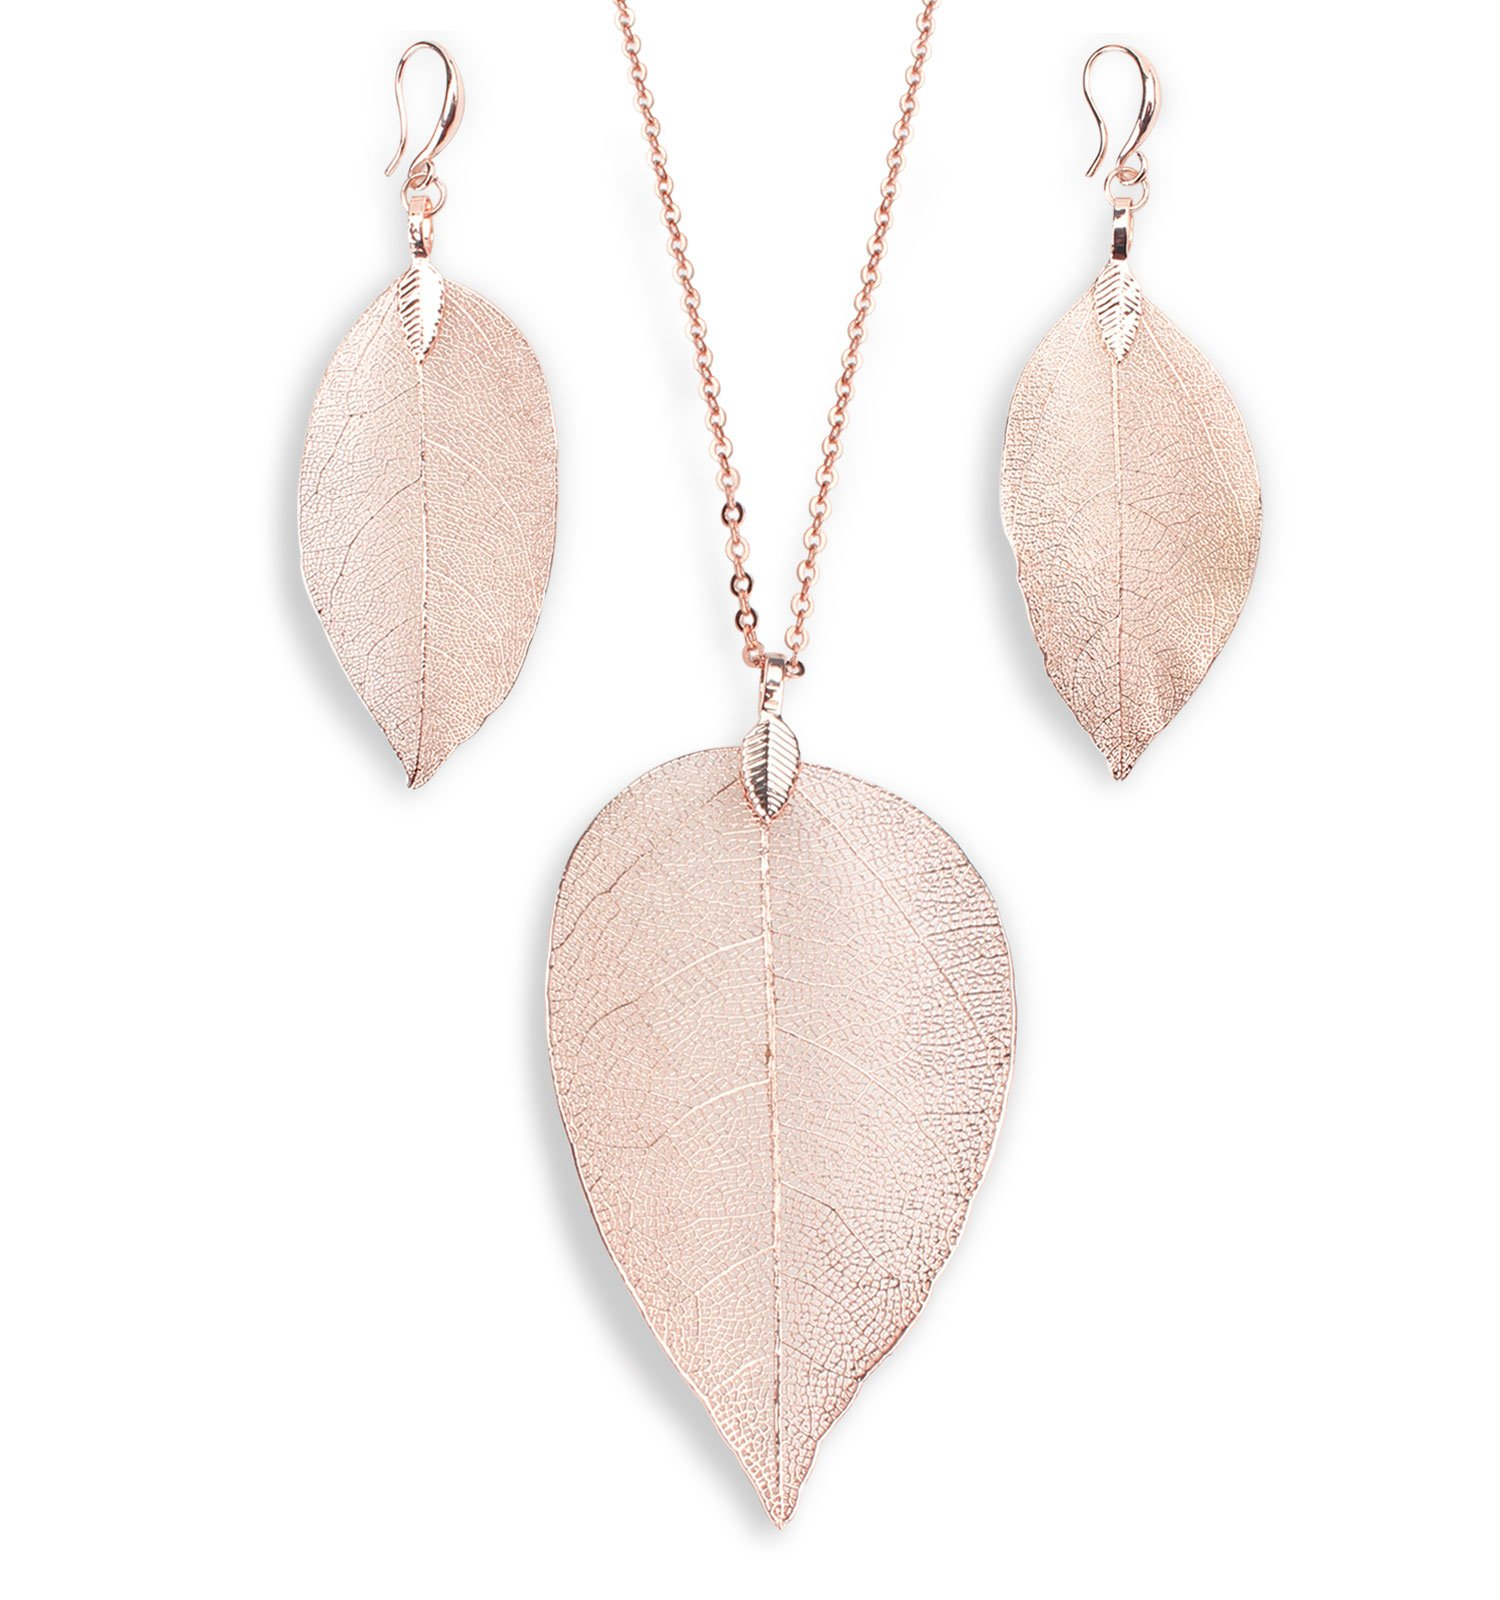 BOUTIQUELOVIN Filigree Long Leaf Pendant and Dangle Earring Jewelry Set for Women Girls-14K Gold,Rose Gold,Silver,Copper (Rose Gold)